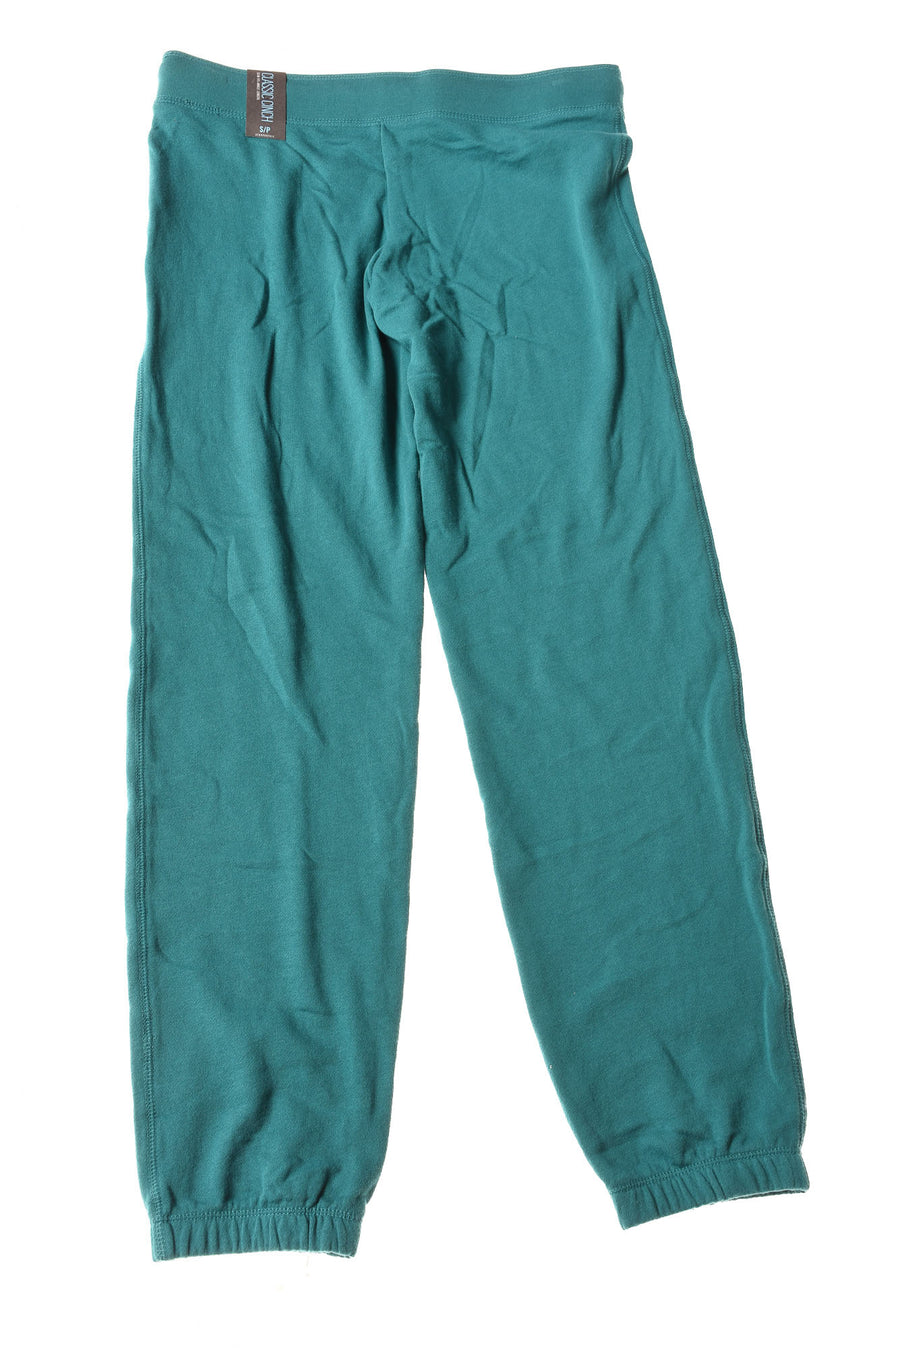 NEW Aeropostale Women's Joggers Small Teal